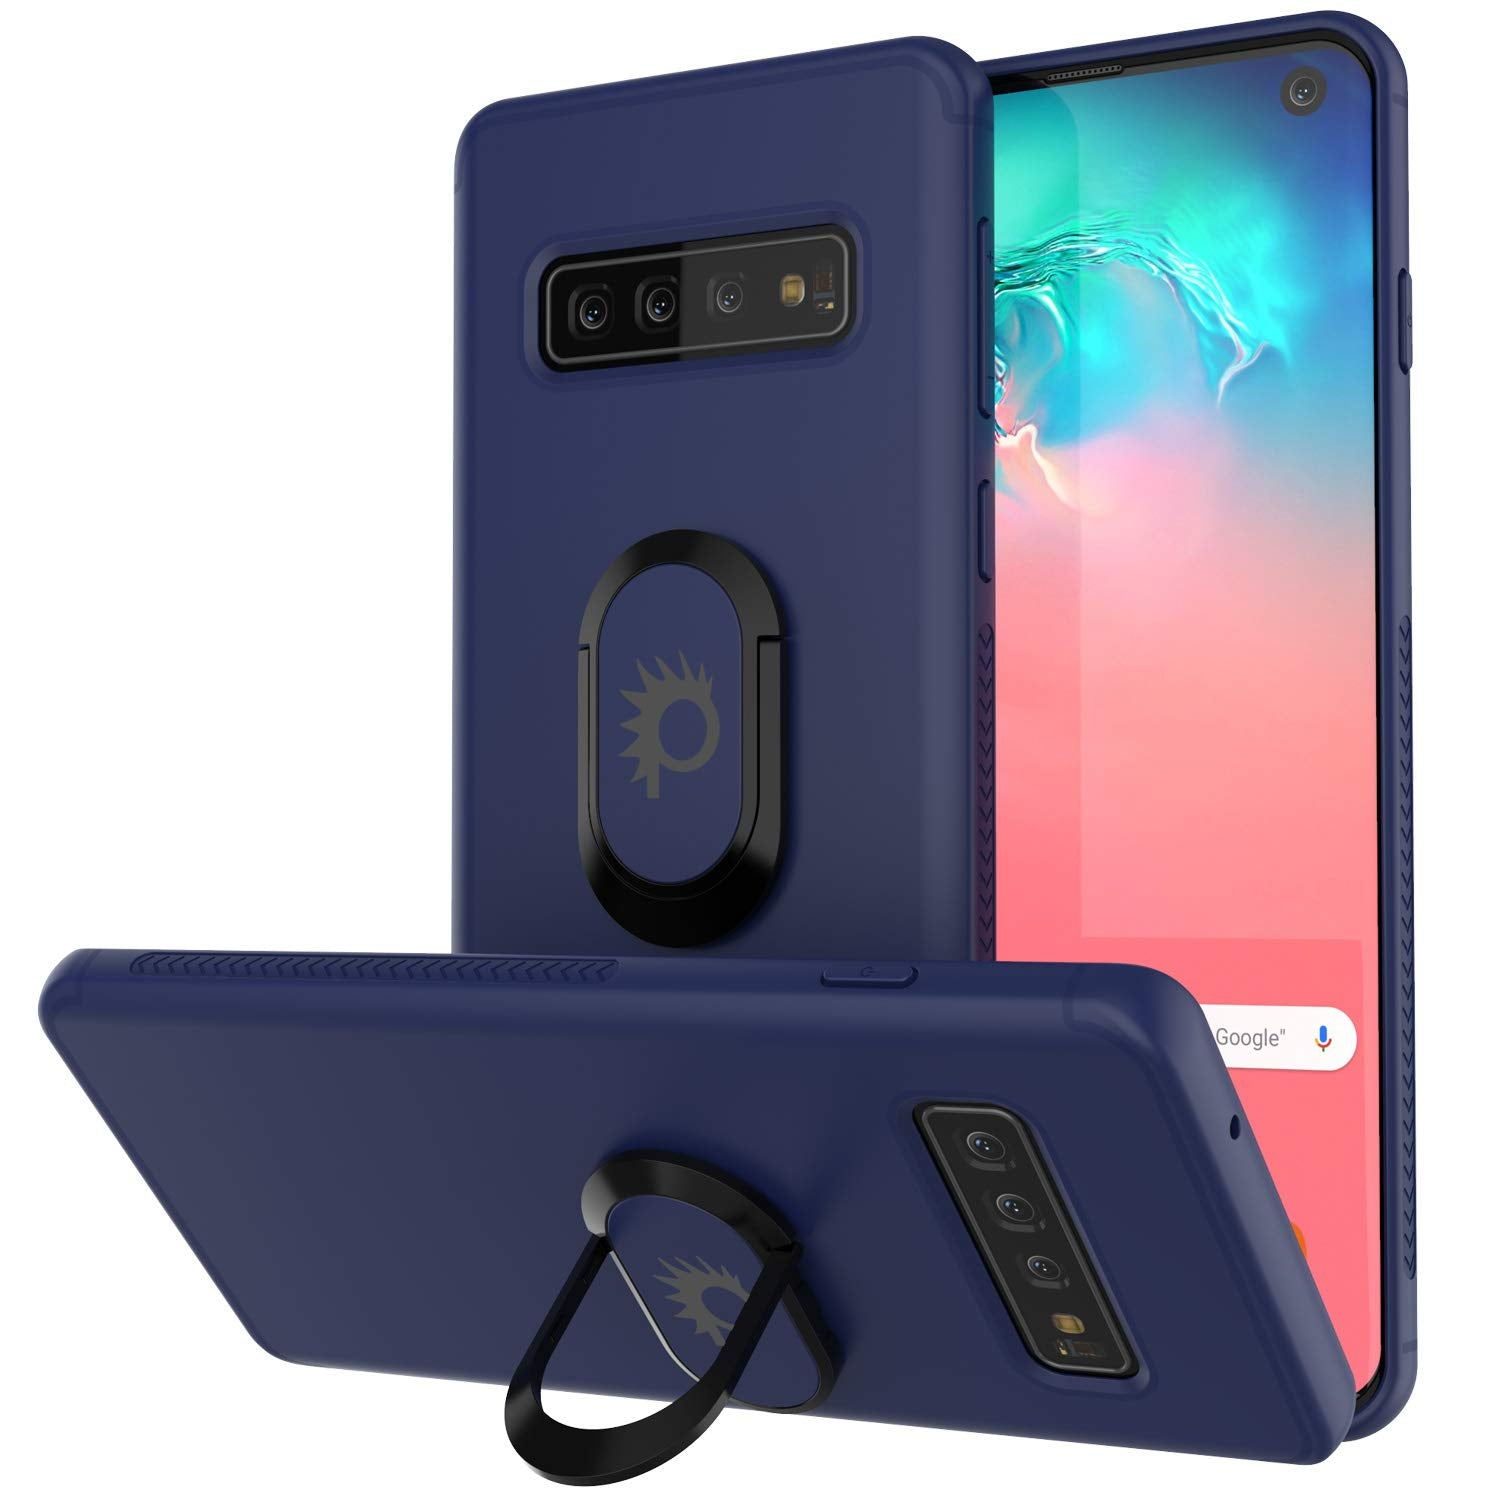 Black Galaxy S8 Case Ring Grip Holder /& Metal Plate for Magnetic Car Phone Mount Plus PunkShield Screen Protector for Samsung S8 Edge Punkcase Magnetix Protective TPU Cover W//Kickstand